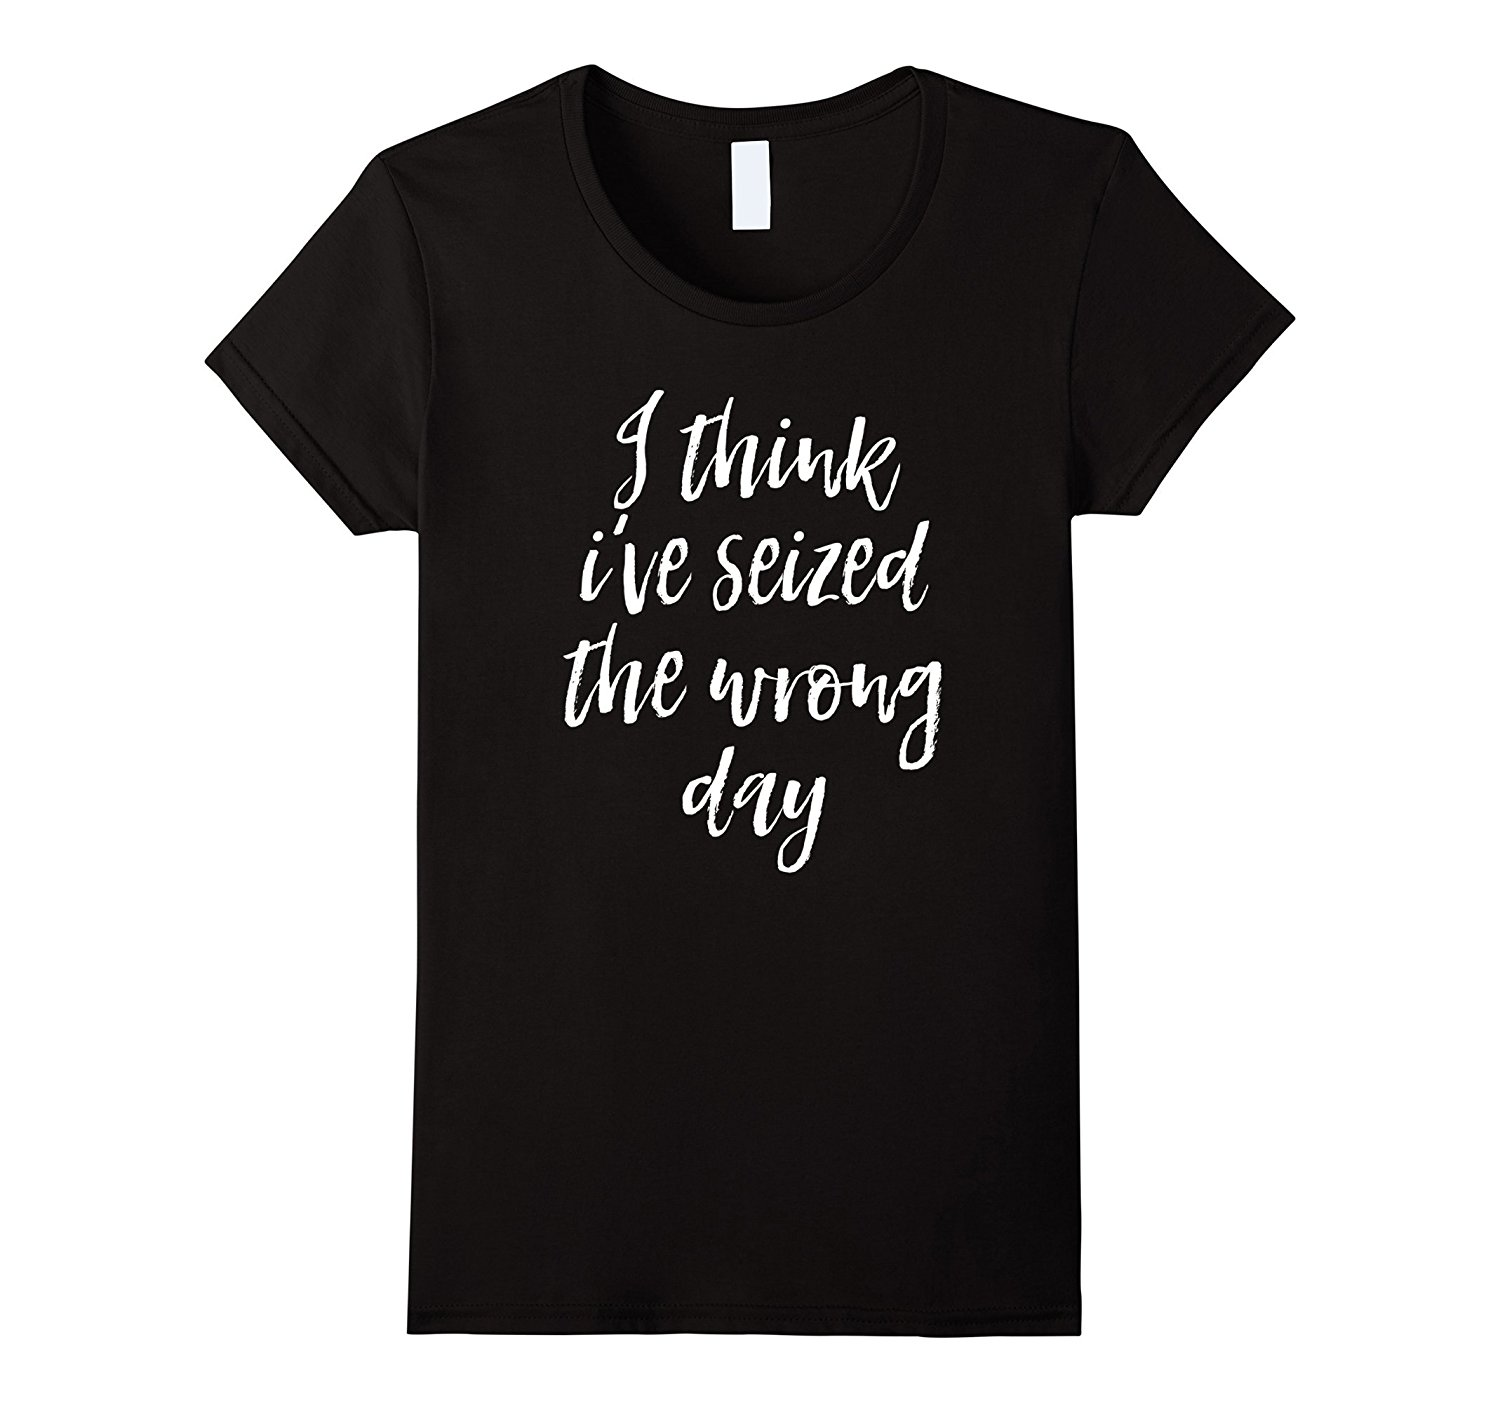 I Think Ive Seized The Wrong Day T Shirt Funny Saying Women Funny Shirts Cotton Tops Shirt Female Print Fashion Tops Tee